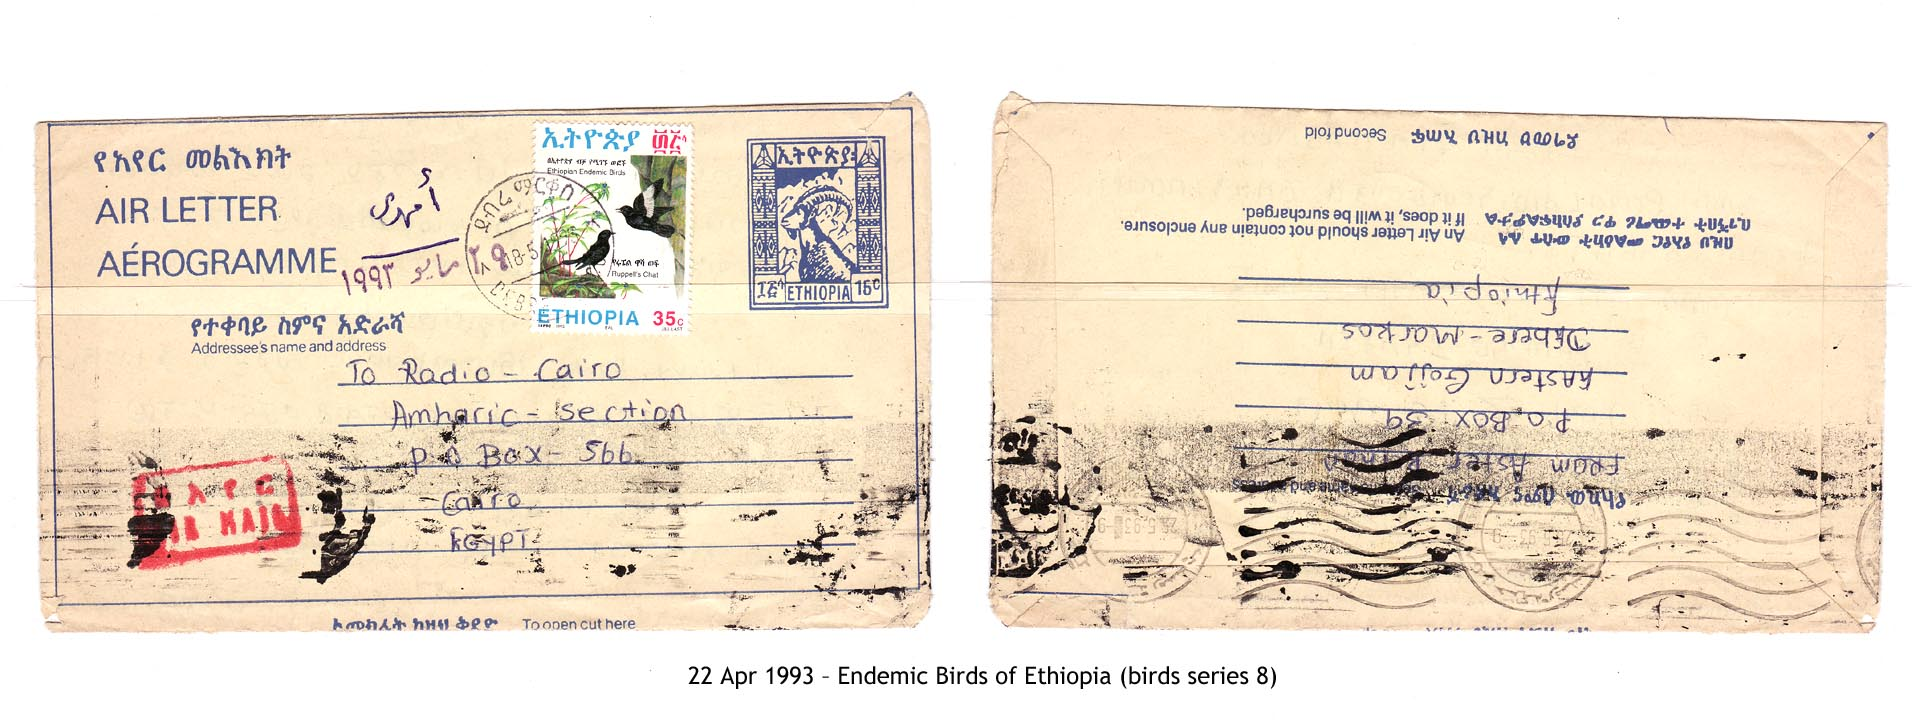 19930422 – Endemic Birds of Ethiopia (birds series 8)